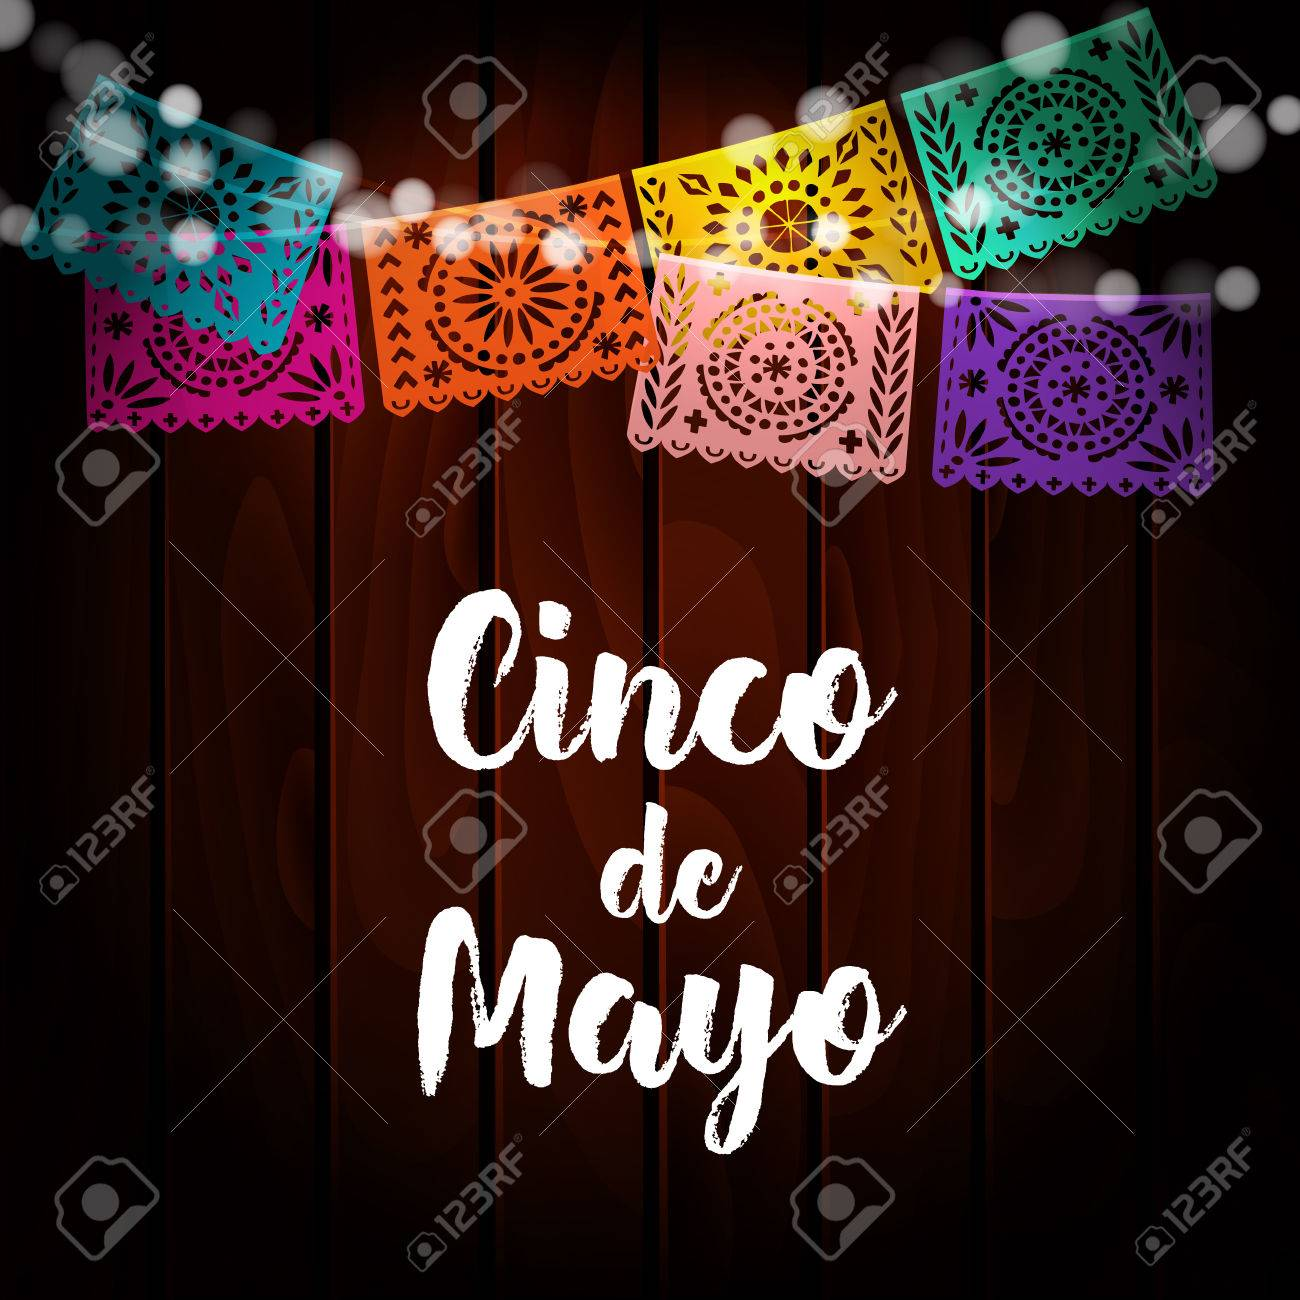 Mexican Cinco de Mayo greeting card, invitation. Party decoration, string of lights, handmade cut paper flags. Old wooden background. Vector illustration. - 74831946